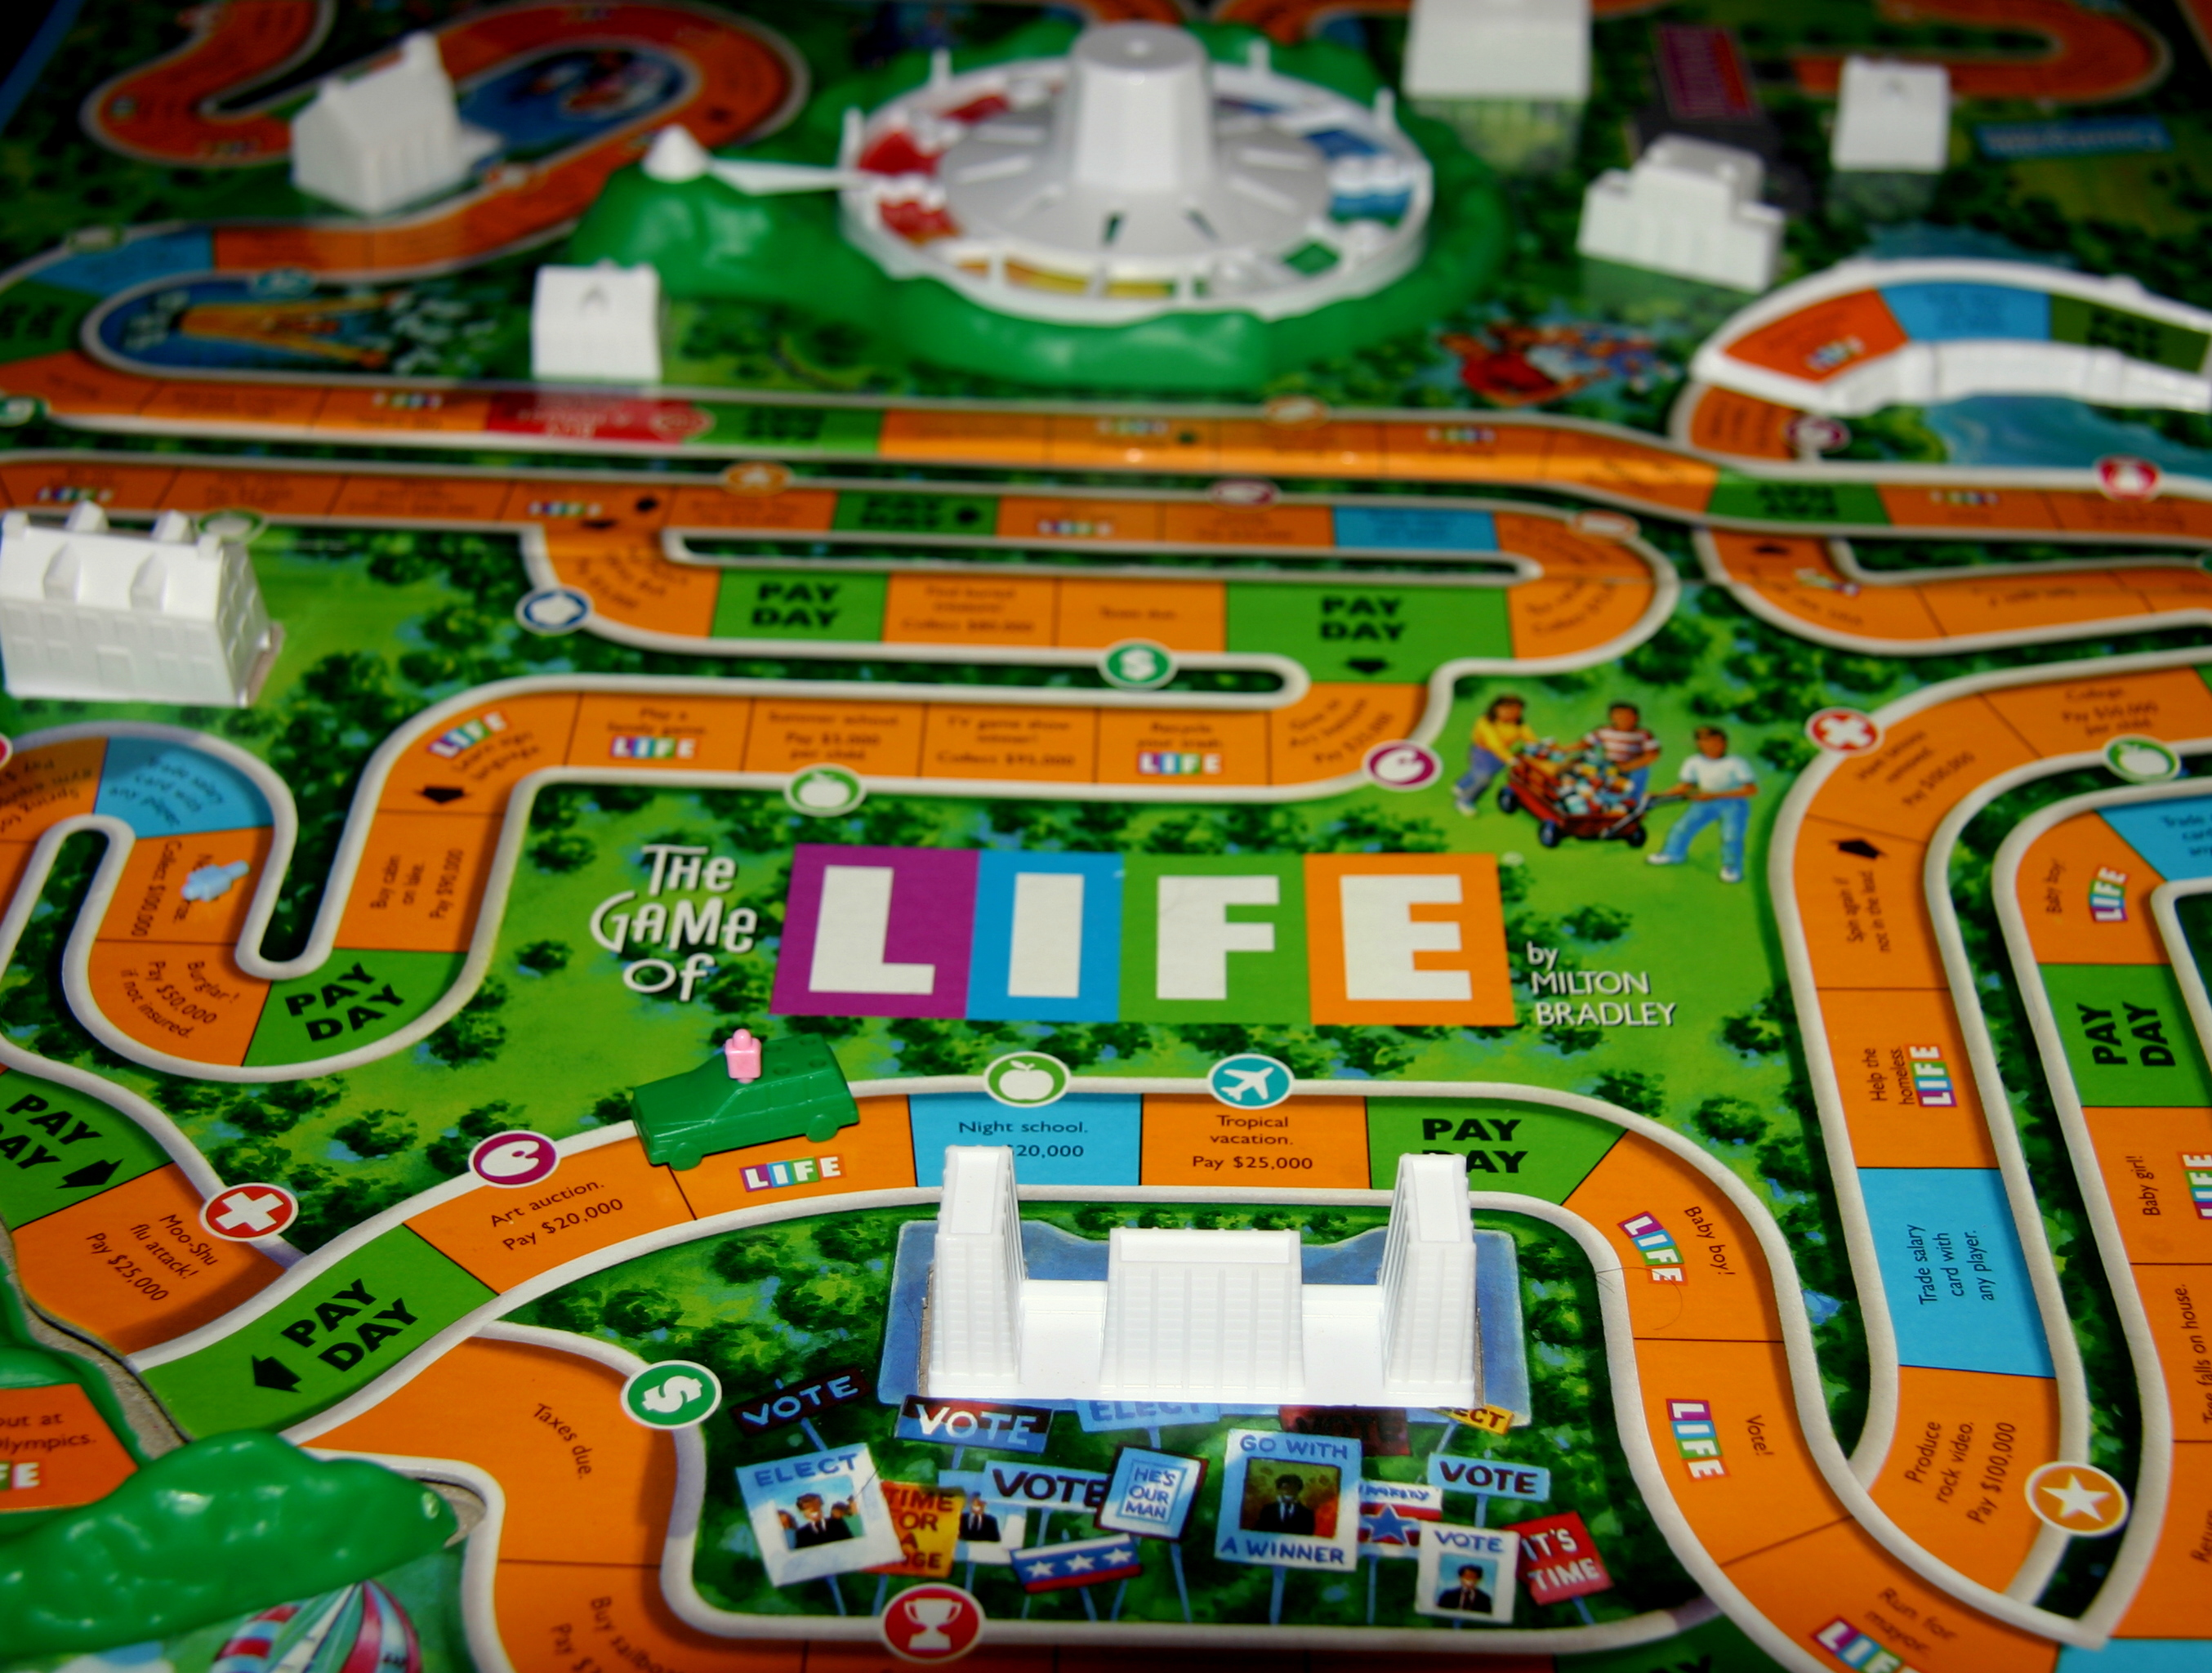 Game of life 007